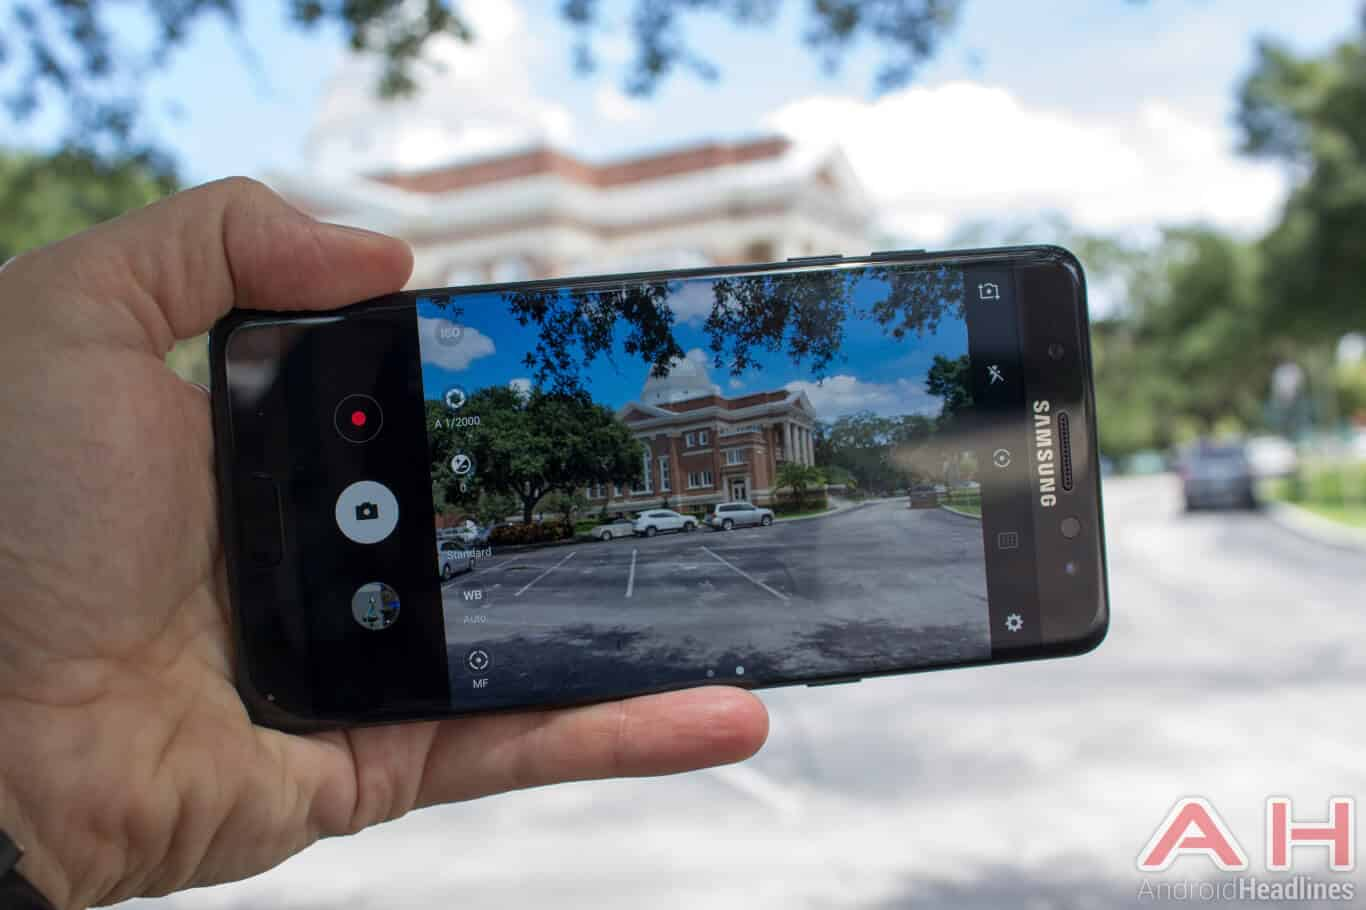 Samsung-Galaxy-Note-7-AH-NS-camera